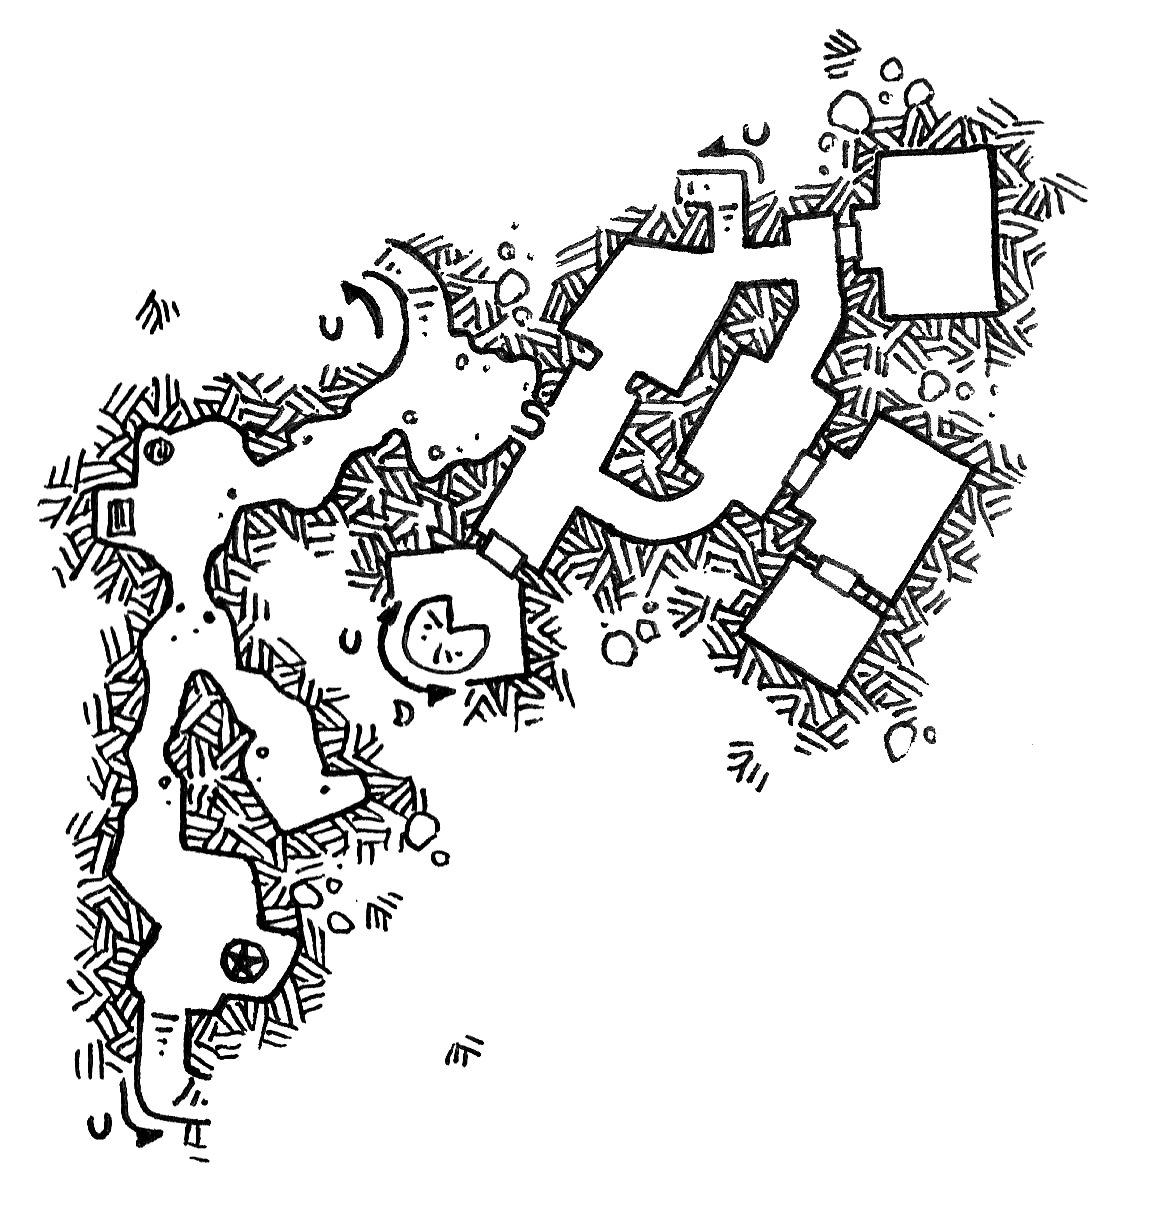 [Friday Map] Hyram's Ruins